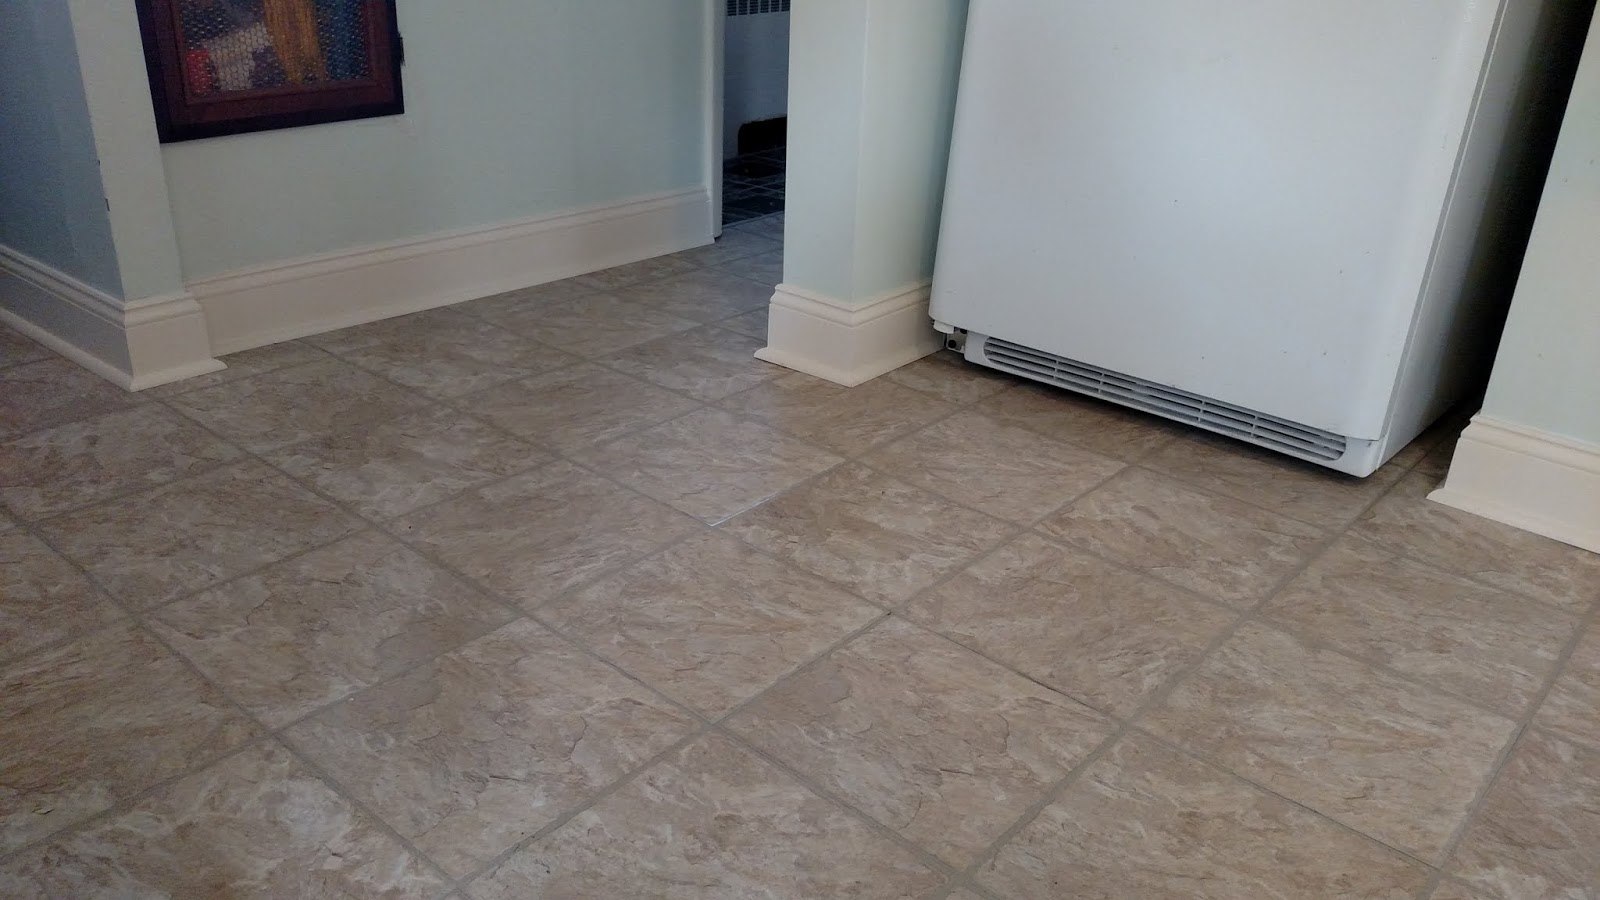 New Flooring and Baseboards in Crafton